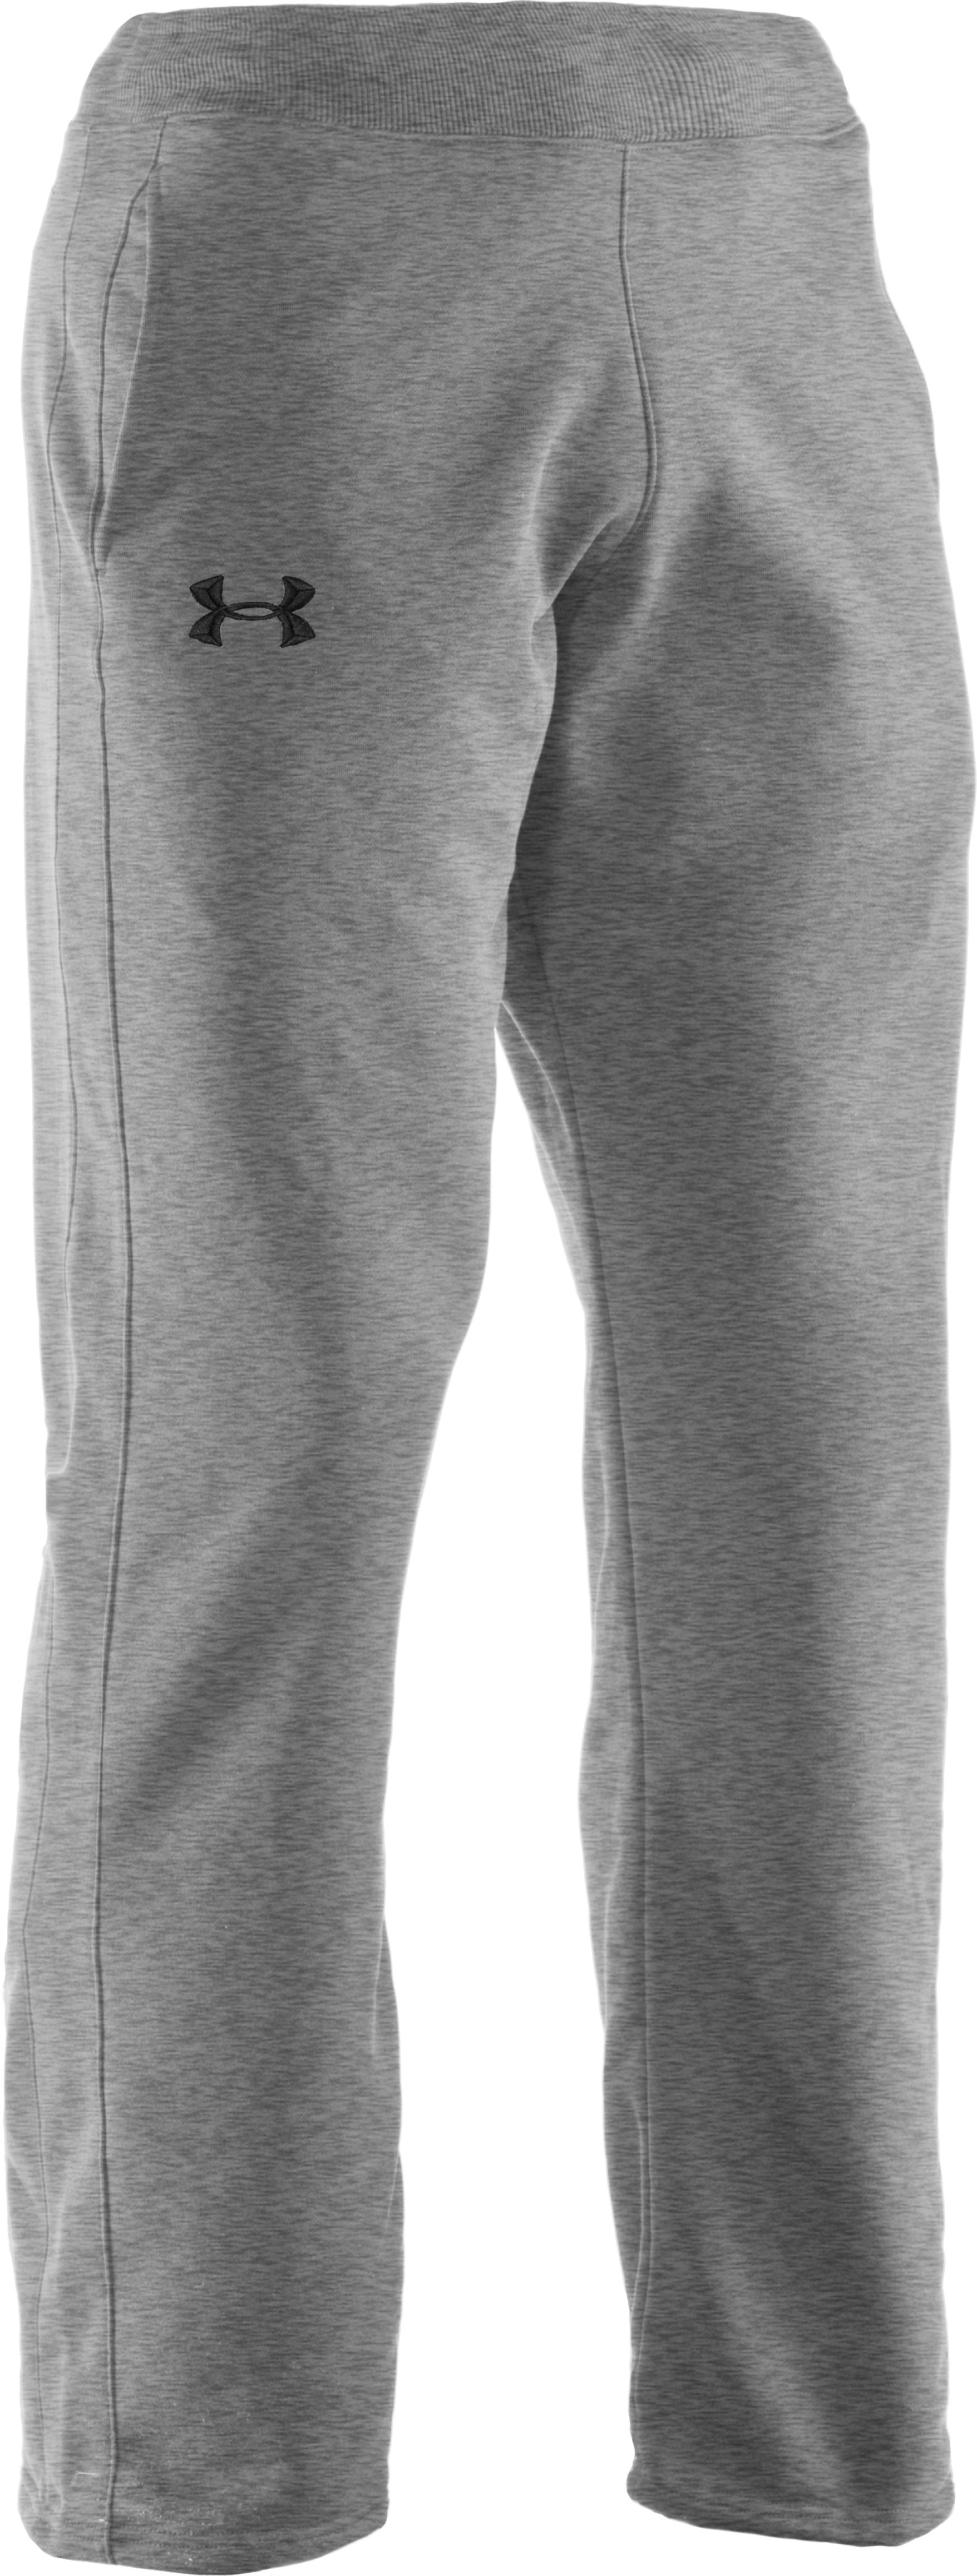 Men's Charged Cotton® Storm Pants, True Gray Heather,